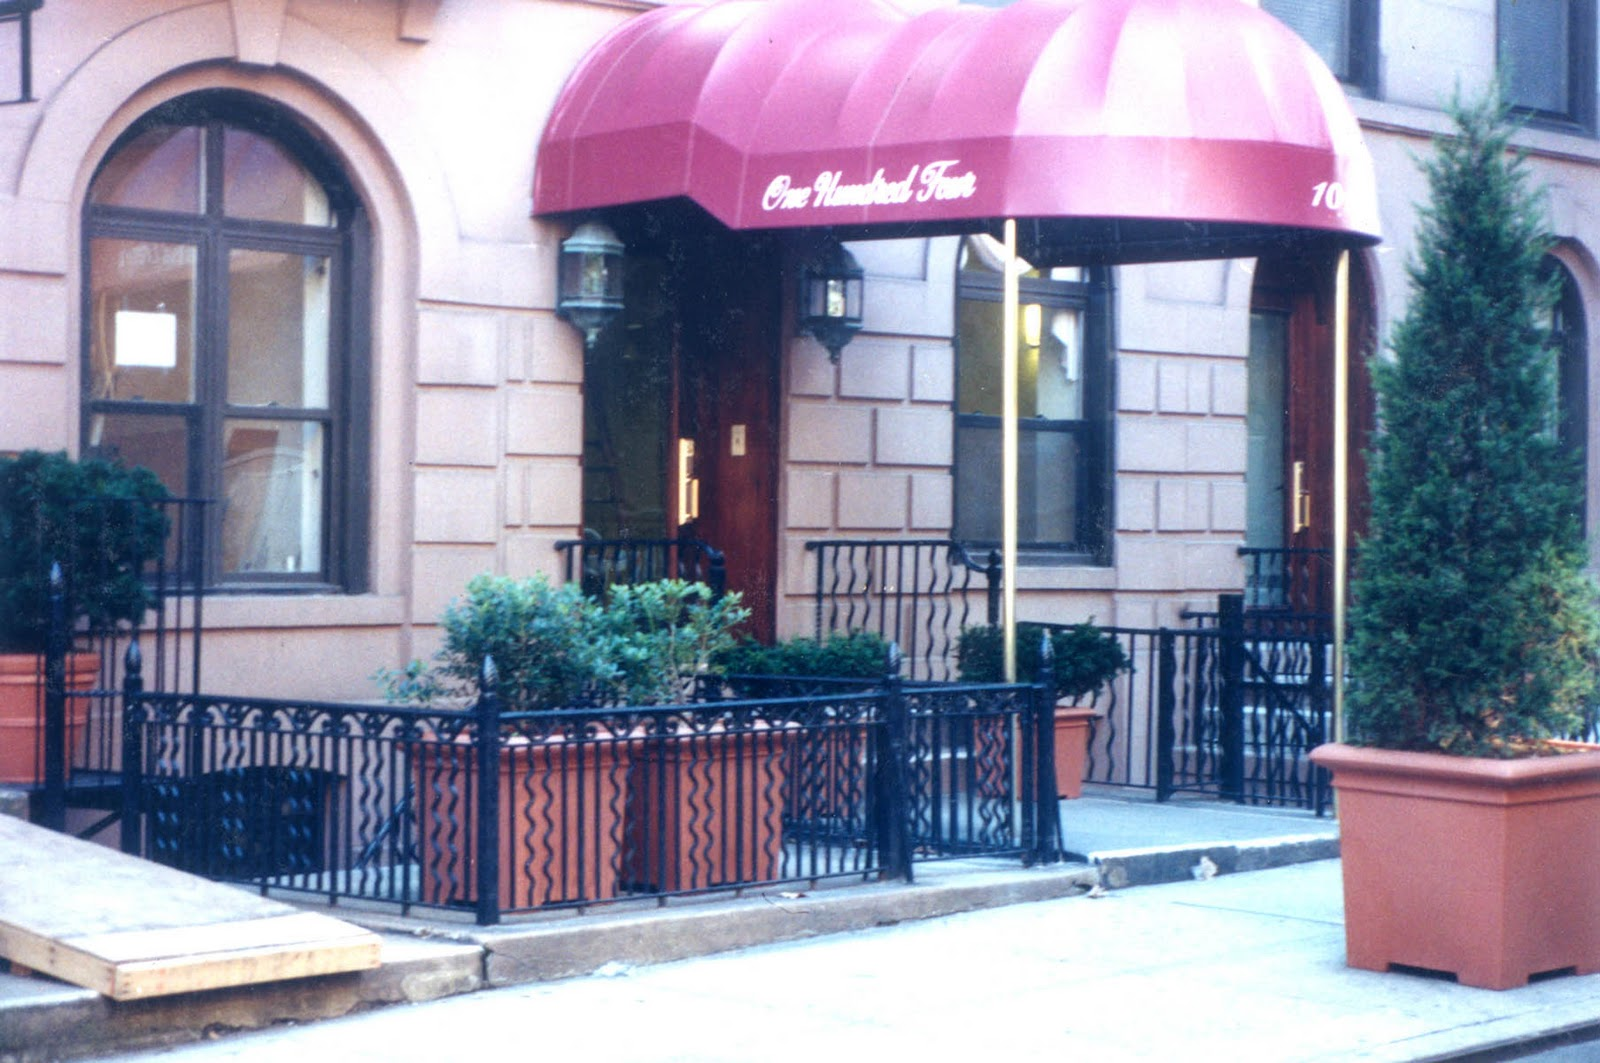 Our State Of The Art Nyc Awning Shop Help Us Produce Many Awnings And On Time Installation Service